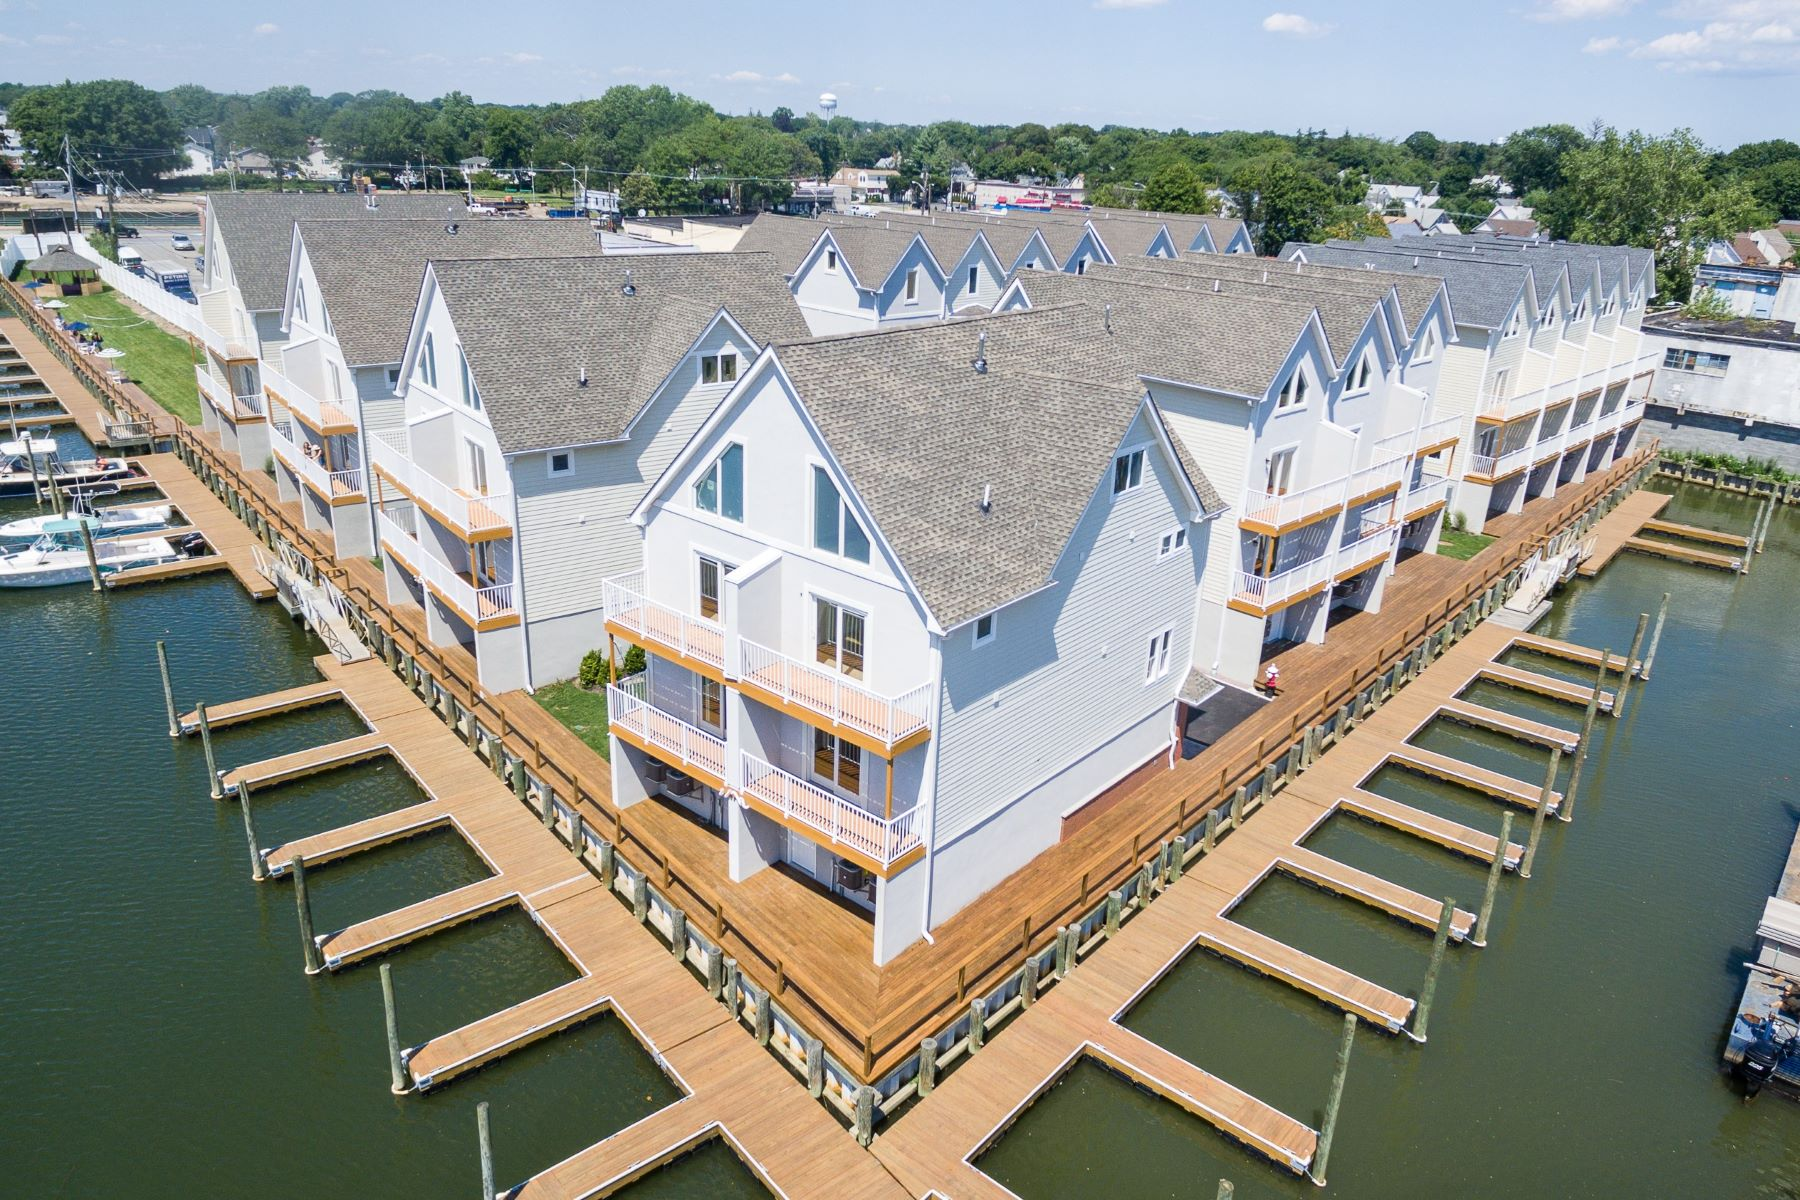 Condominium for Sale at Condo Yachtsman's Cove 17 Freeport, New York 11520 United States